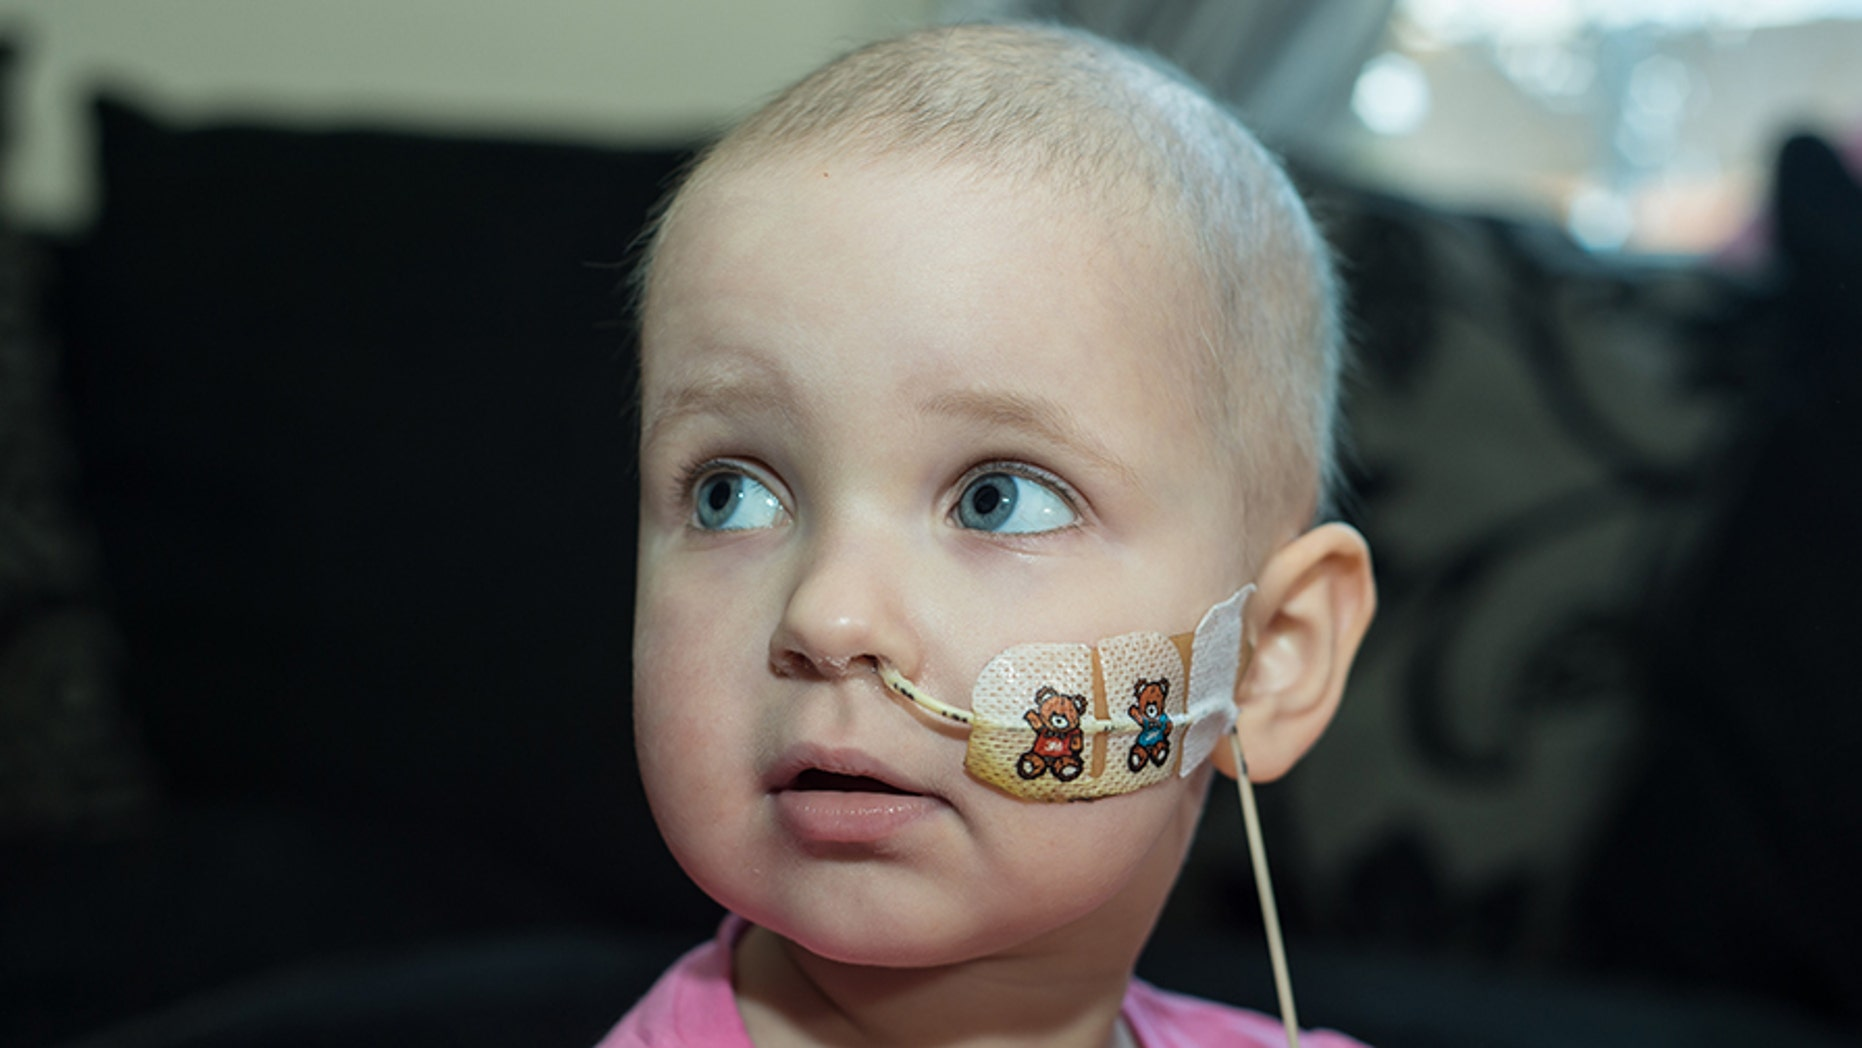 Tazmin Handley was diagnosed with leukemia last summer, but after going through chemotherapy she is now in remission.